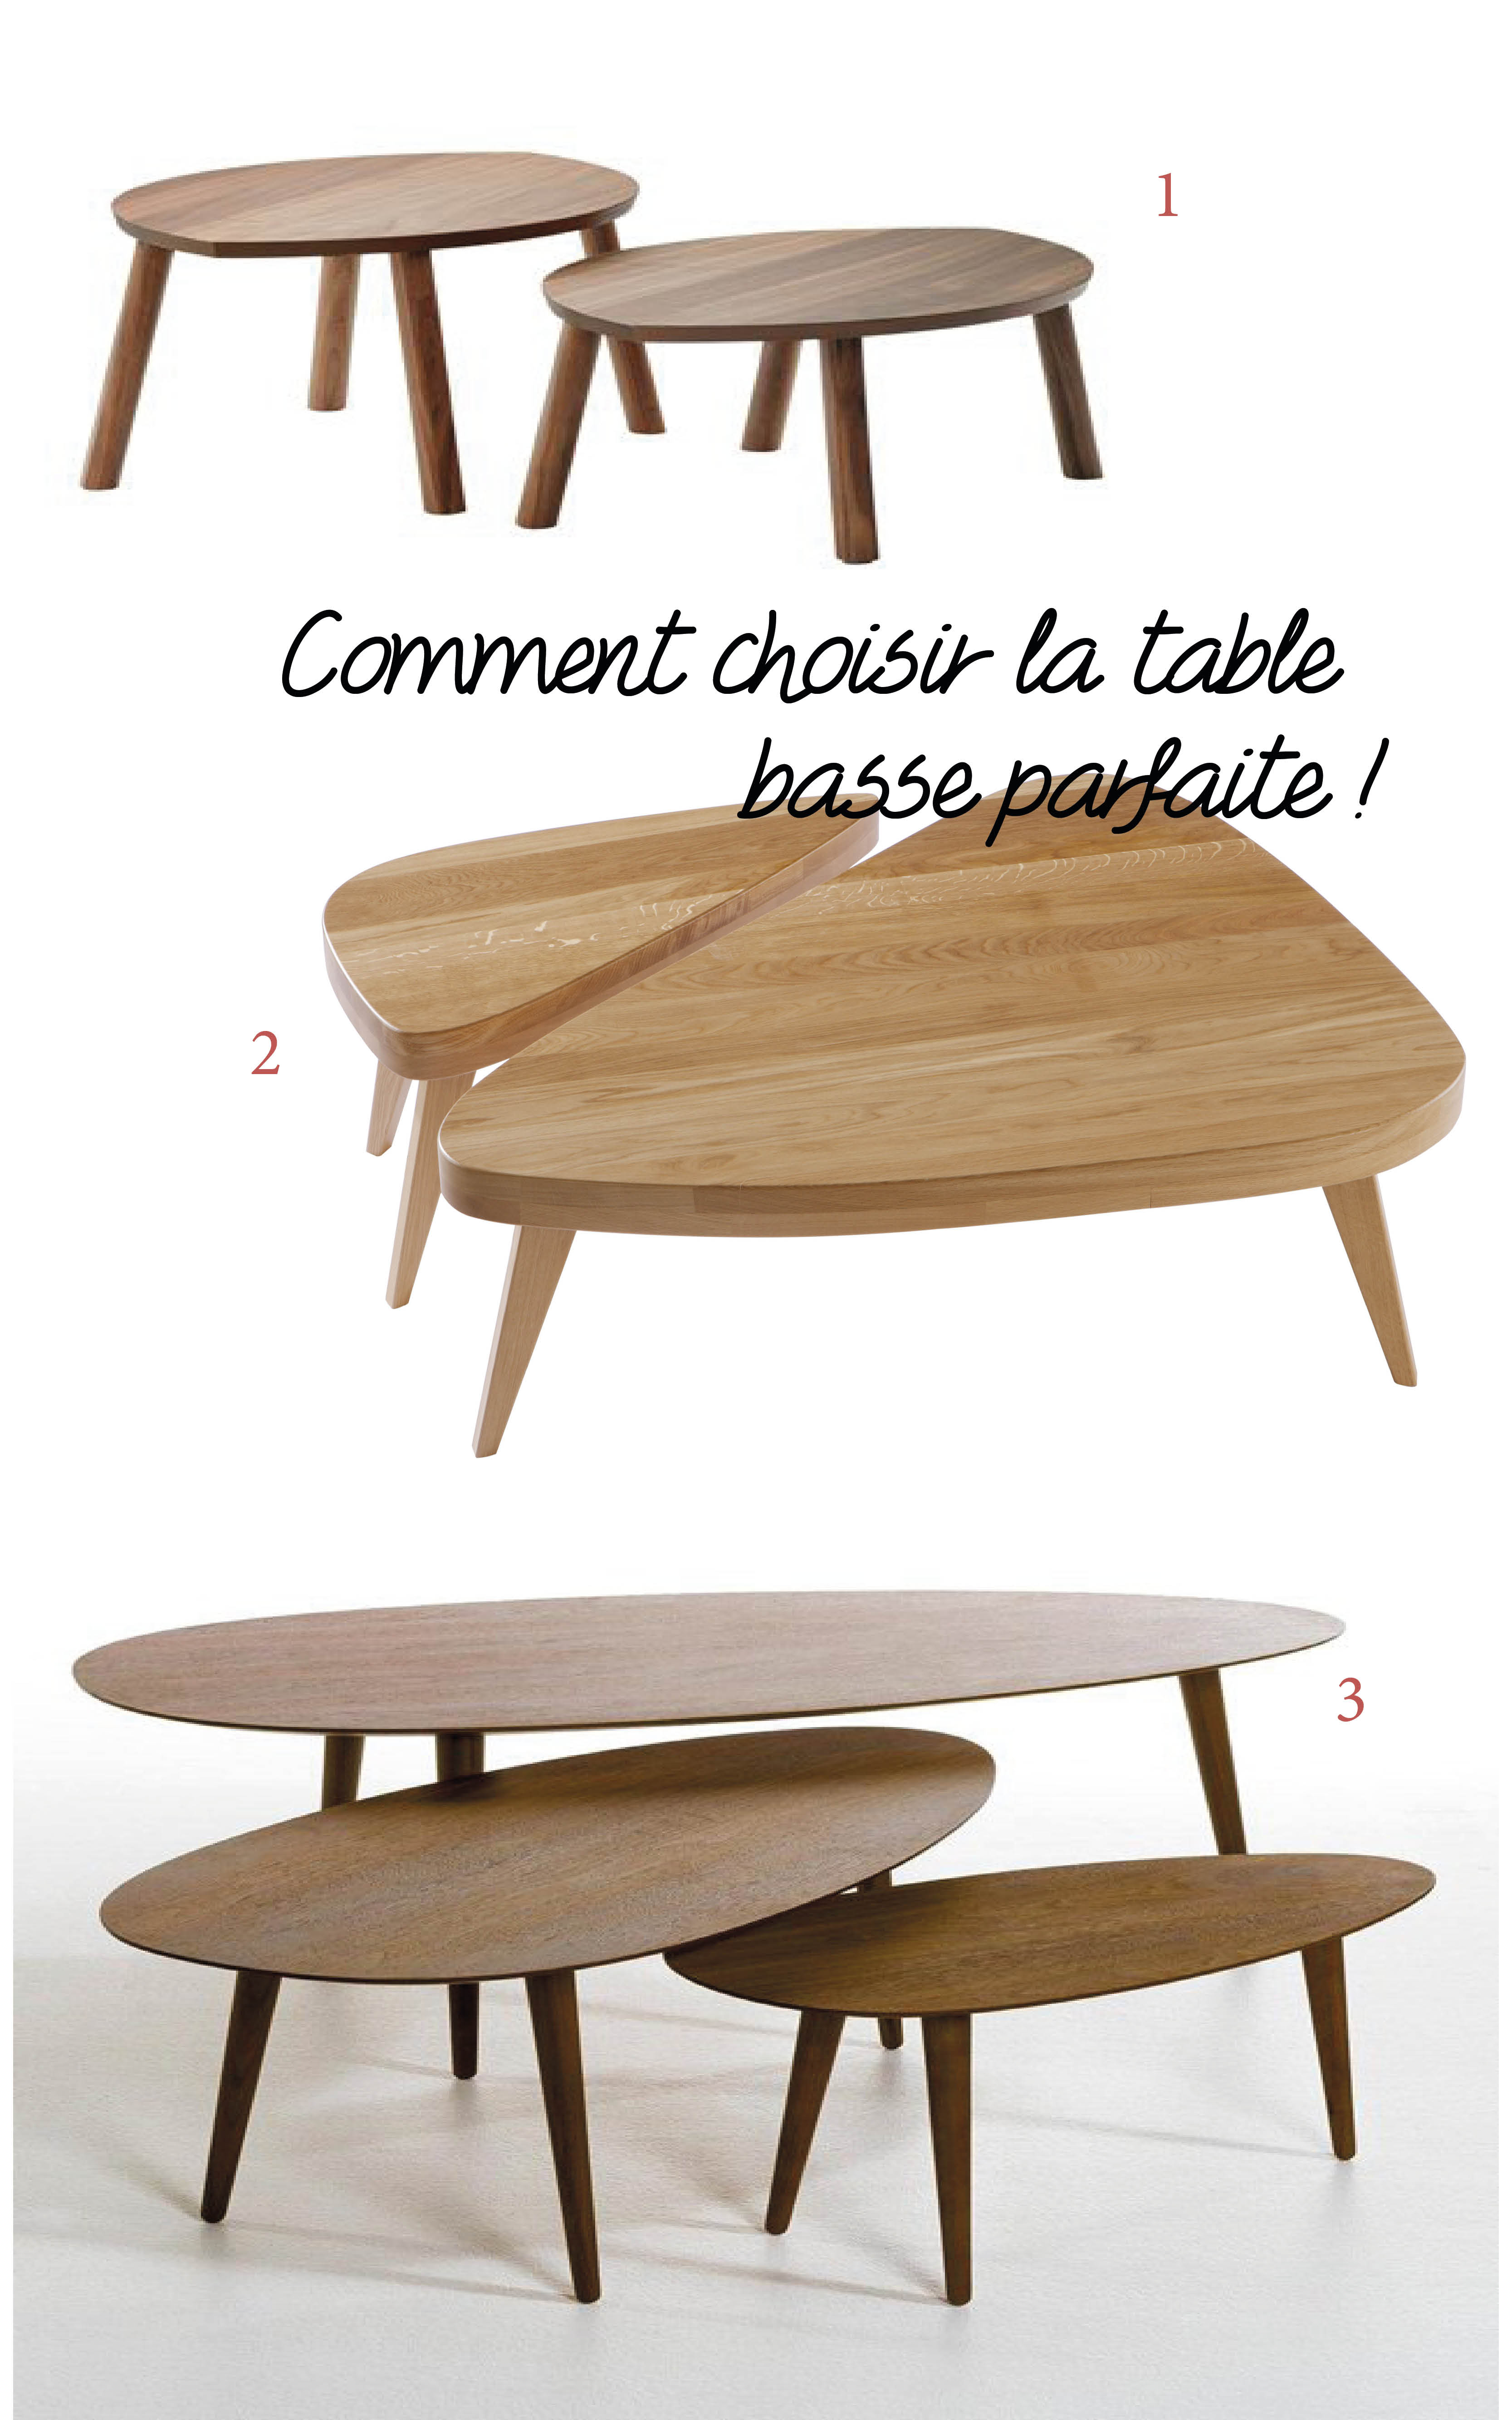 Table basse ika best free best table basse ikea blanc for Table extensible ikea bjursta brun noir